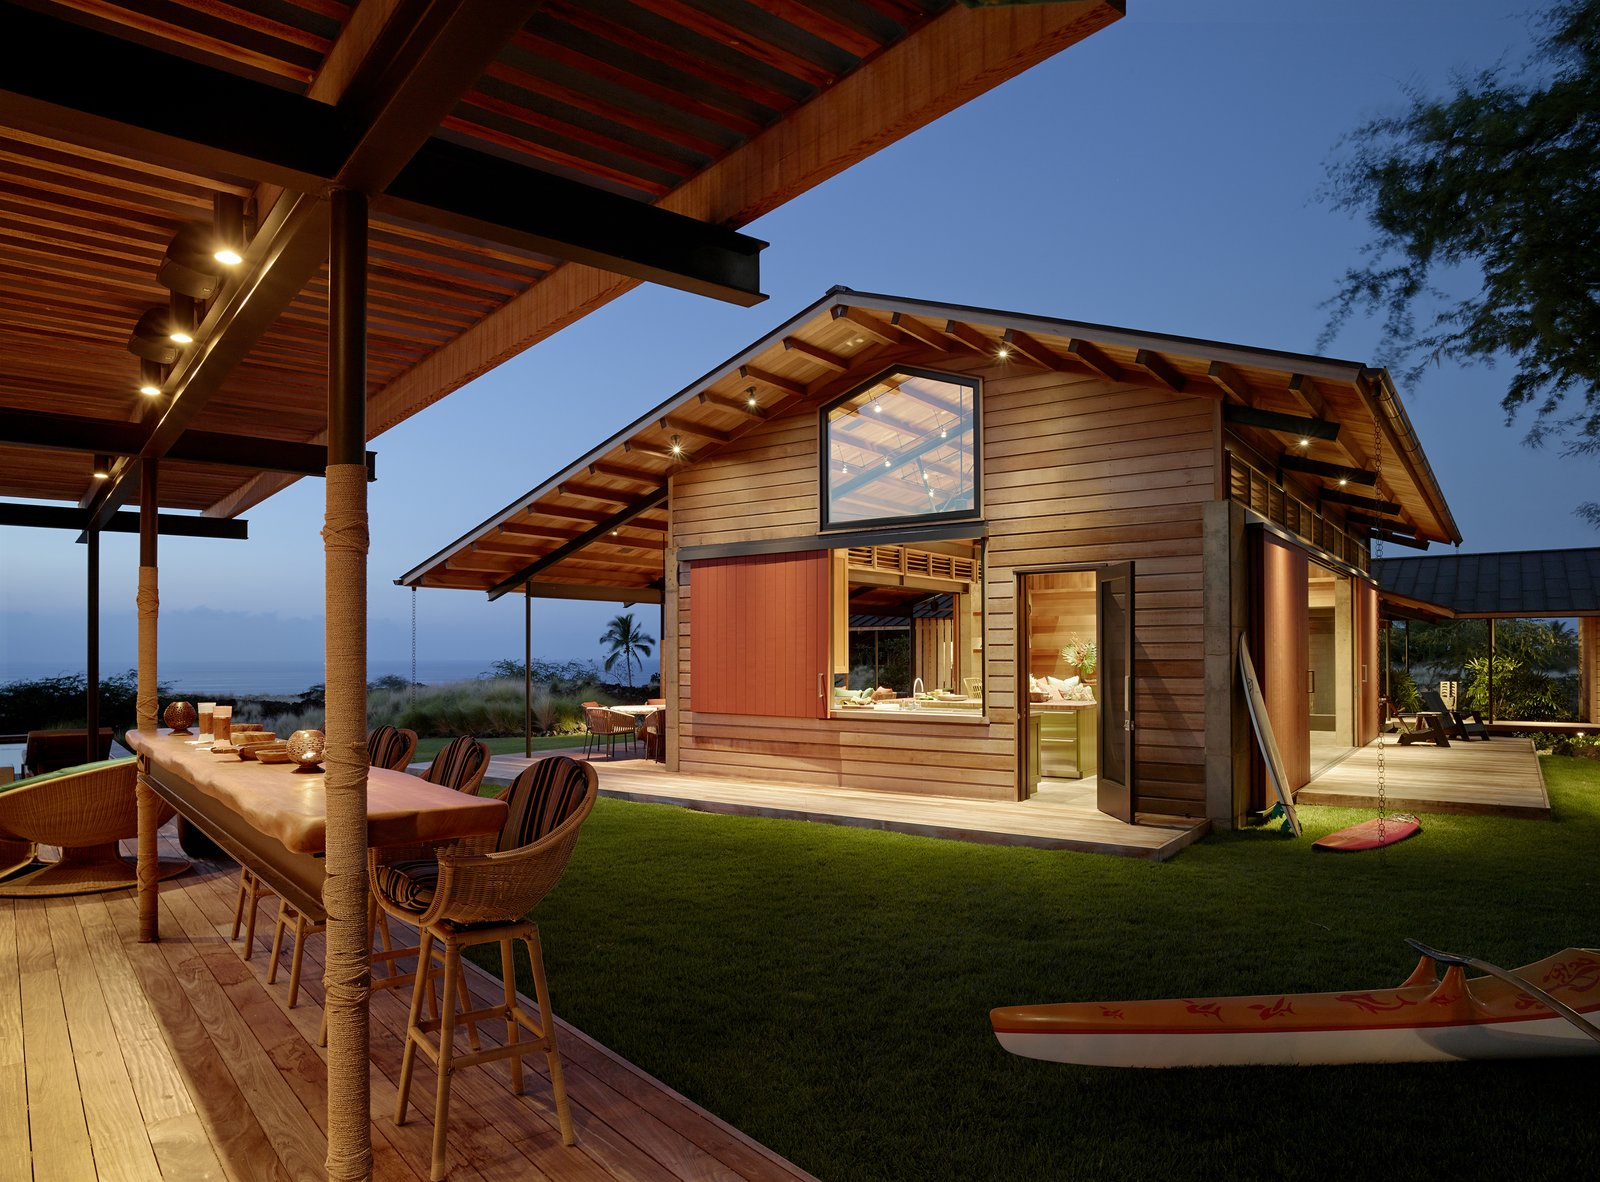 An Incredible Home in Hawaii That's As Much Fun As Summer Camp